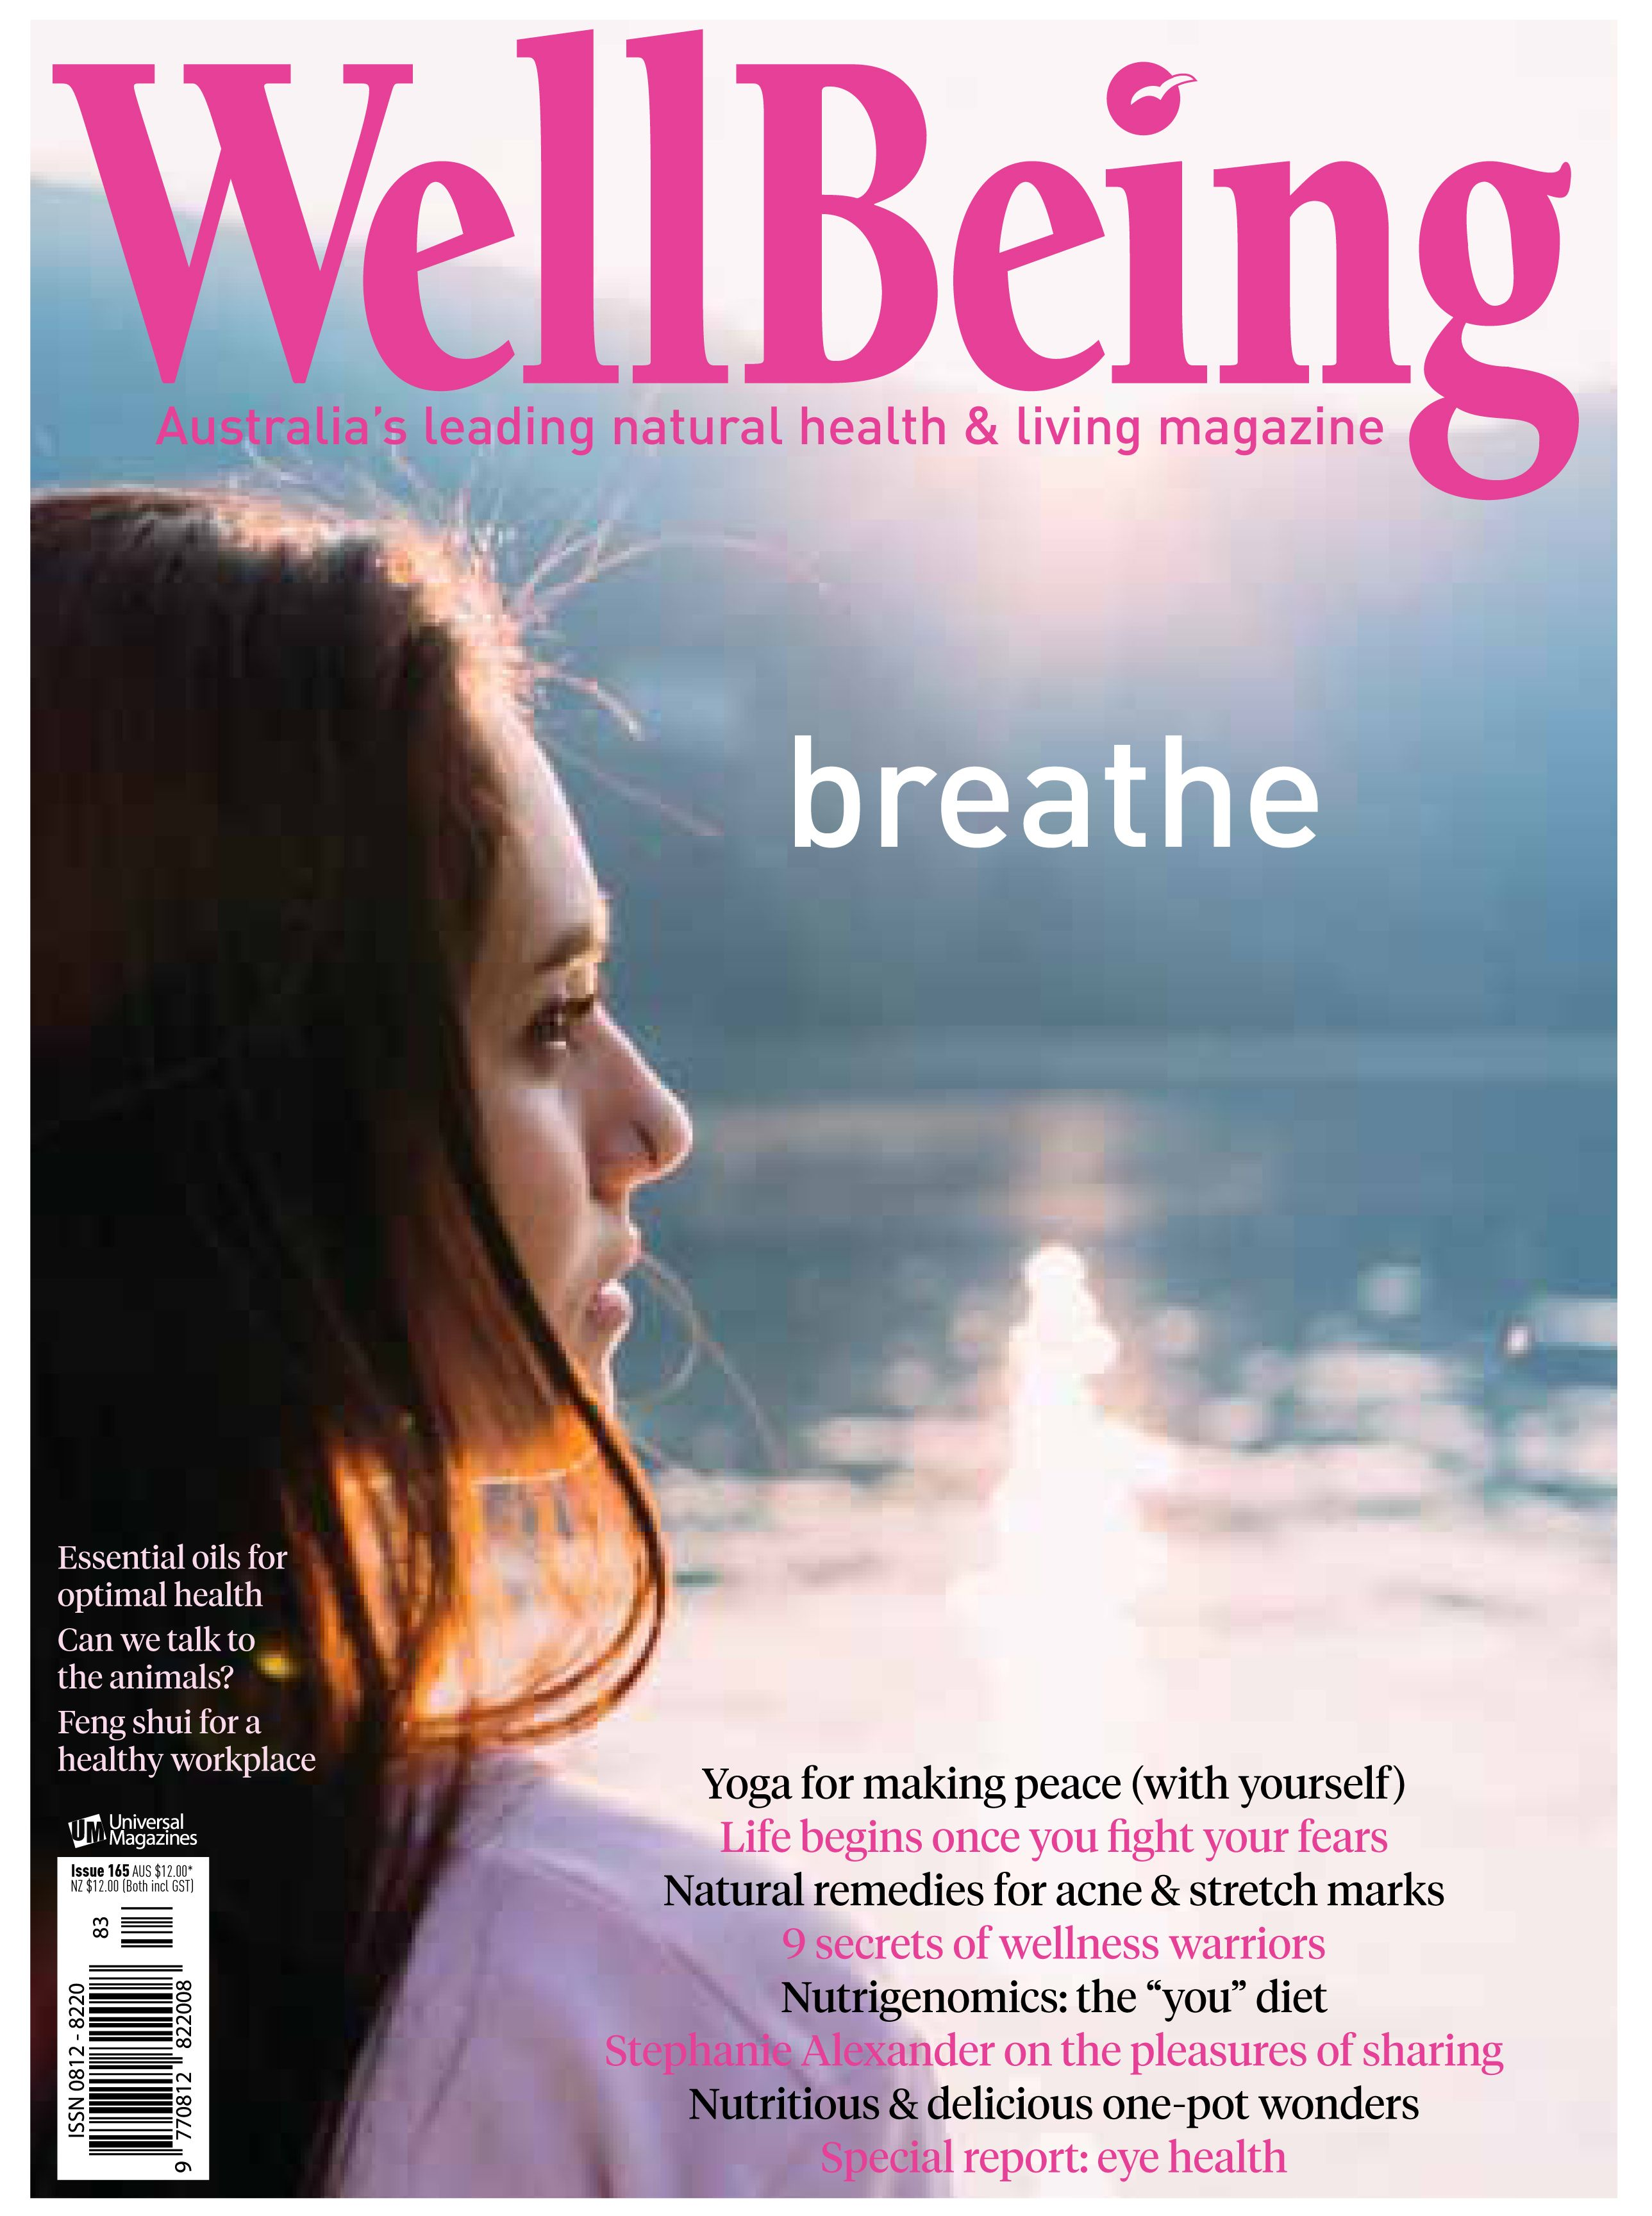 In WellBeing 165, we share how to create a meaningful life while striking the right balance between contribution and self-care. We sit down with Stephanie Alexander, explore how your genetic makeup can influence your wellness goals, look at eye health and draw comparisons between high-intensity interval training and hatha yoga. You'll also discover nourishing stretch mark remedies, ways to treat acne and essential oils, as well as one-pot wonders that'll revolutionise your week. Plus much…